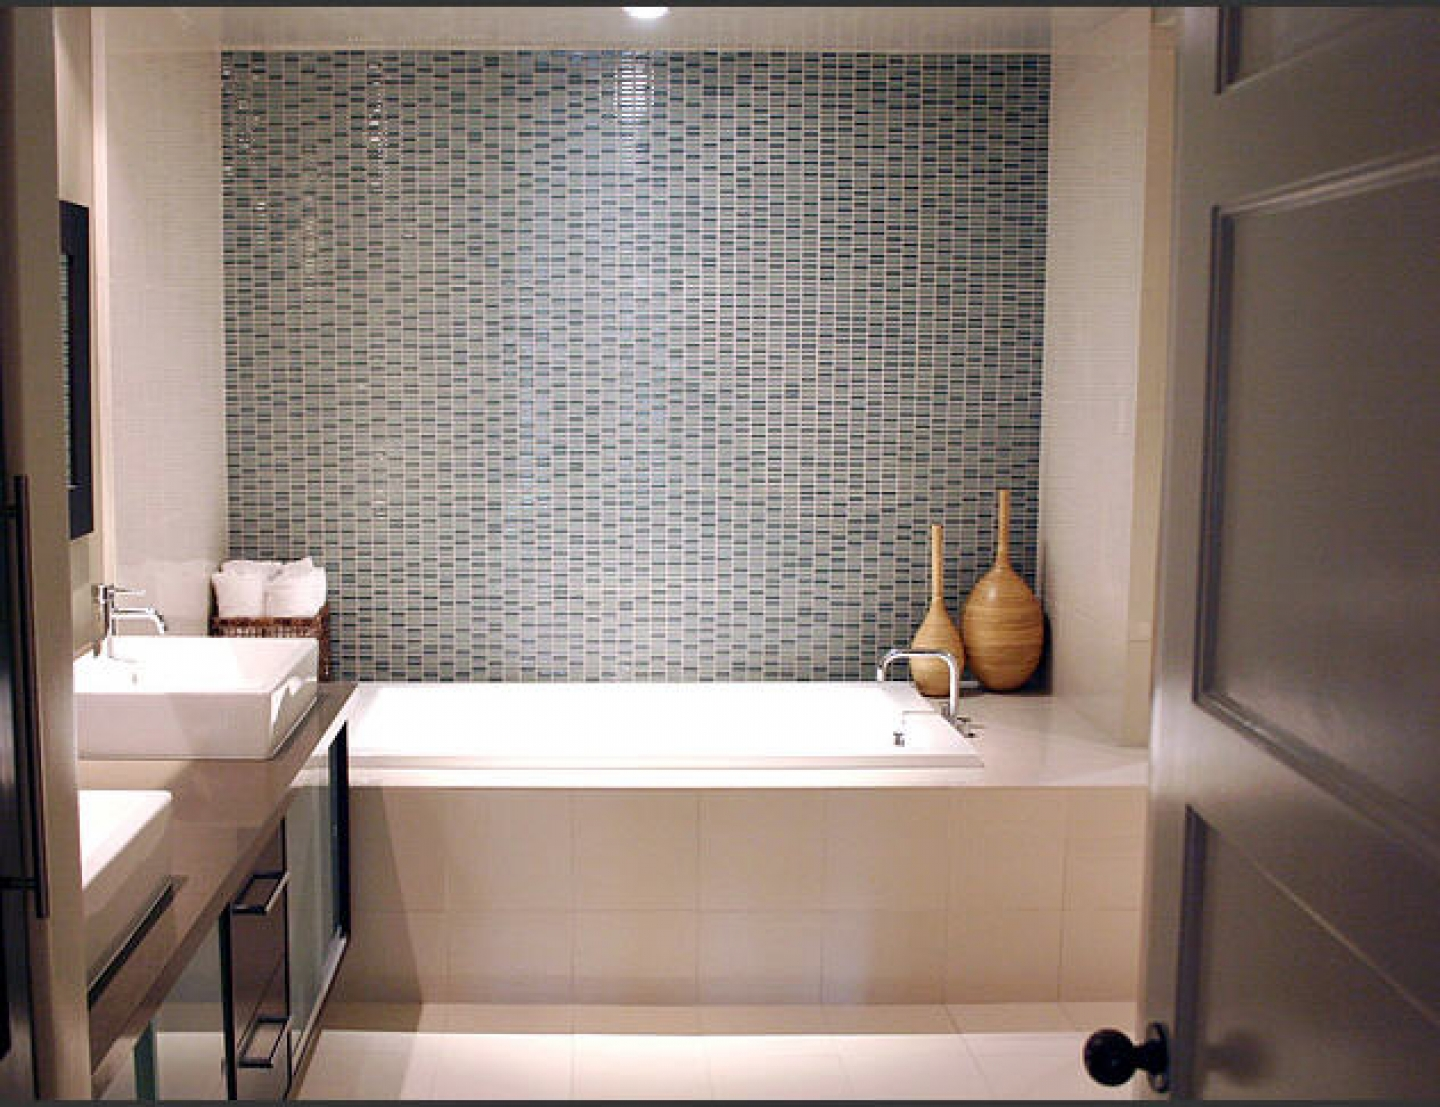 Bathroom ideas for small space for Bath remodel ideas